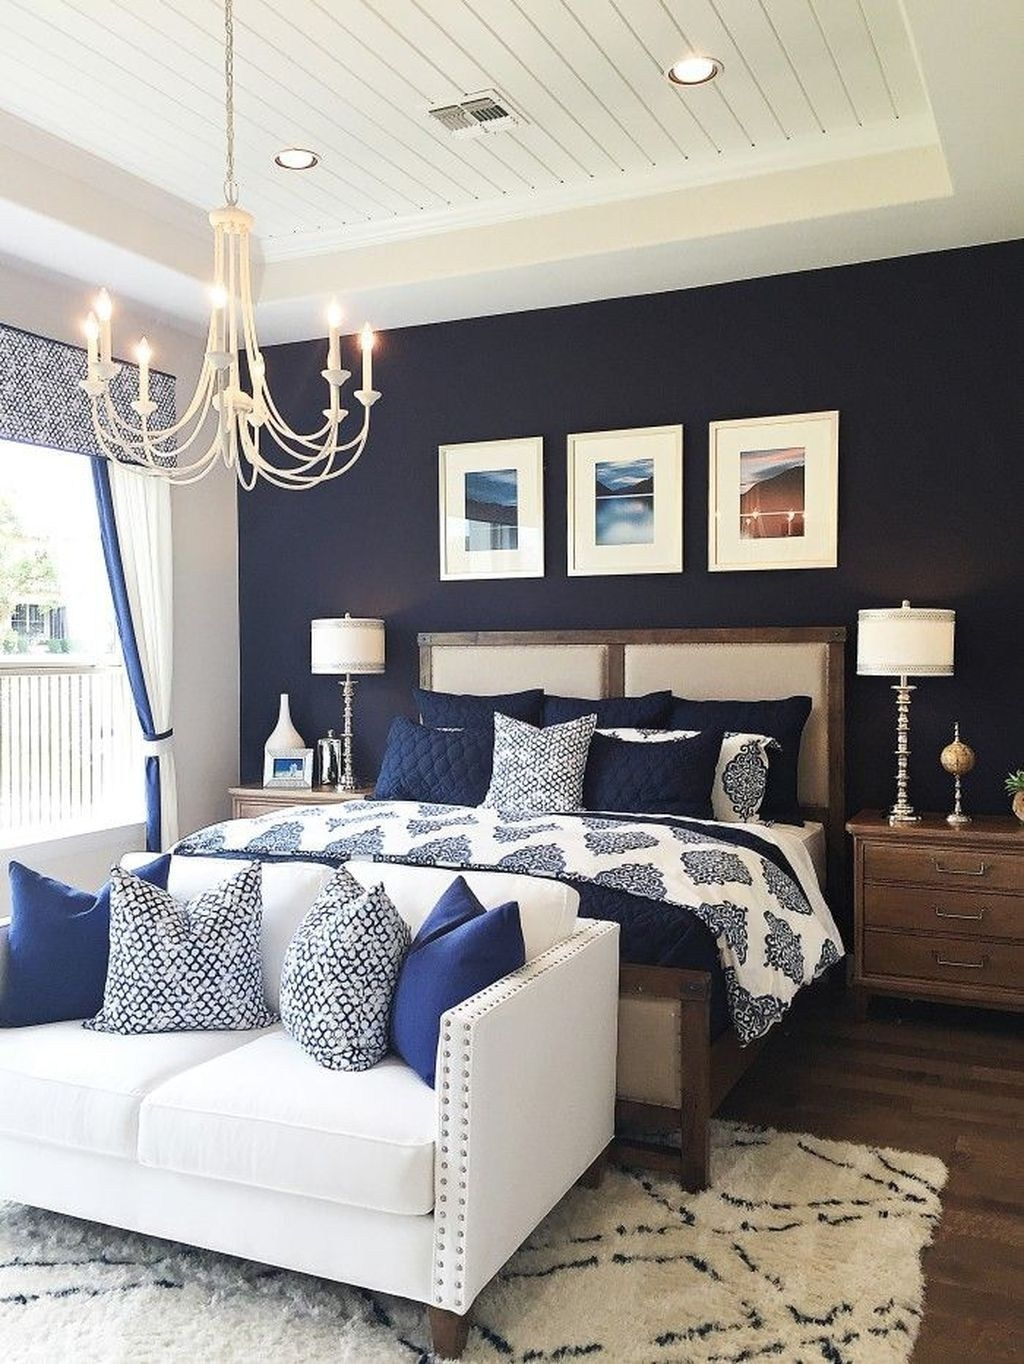 Awesome Master Bedroom Design Ideas38